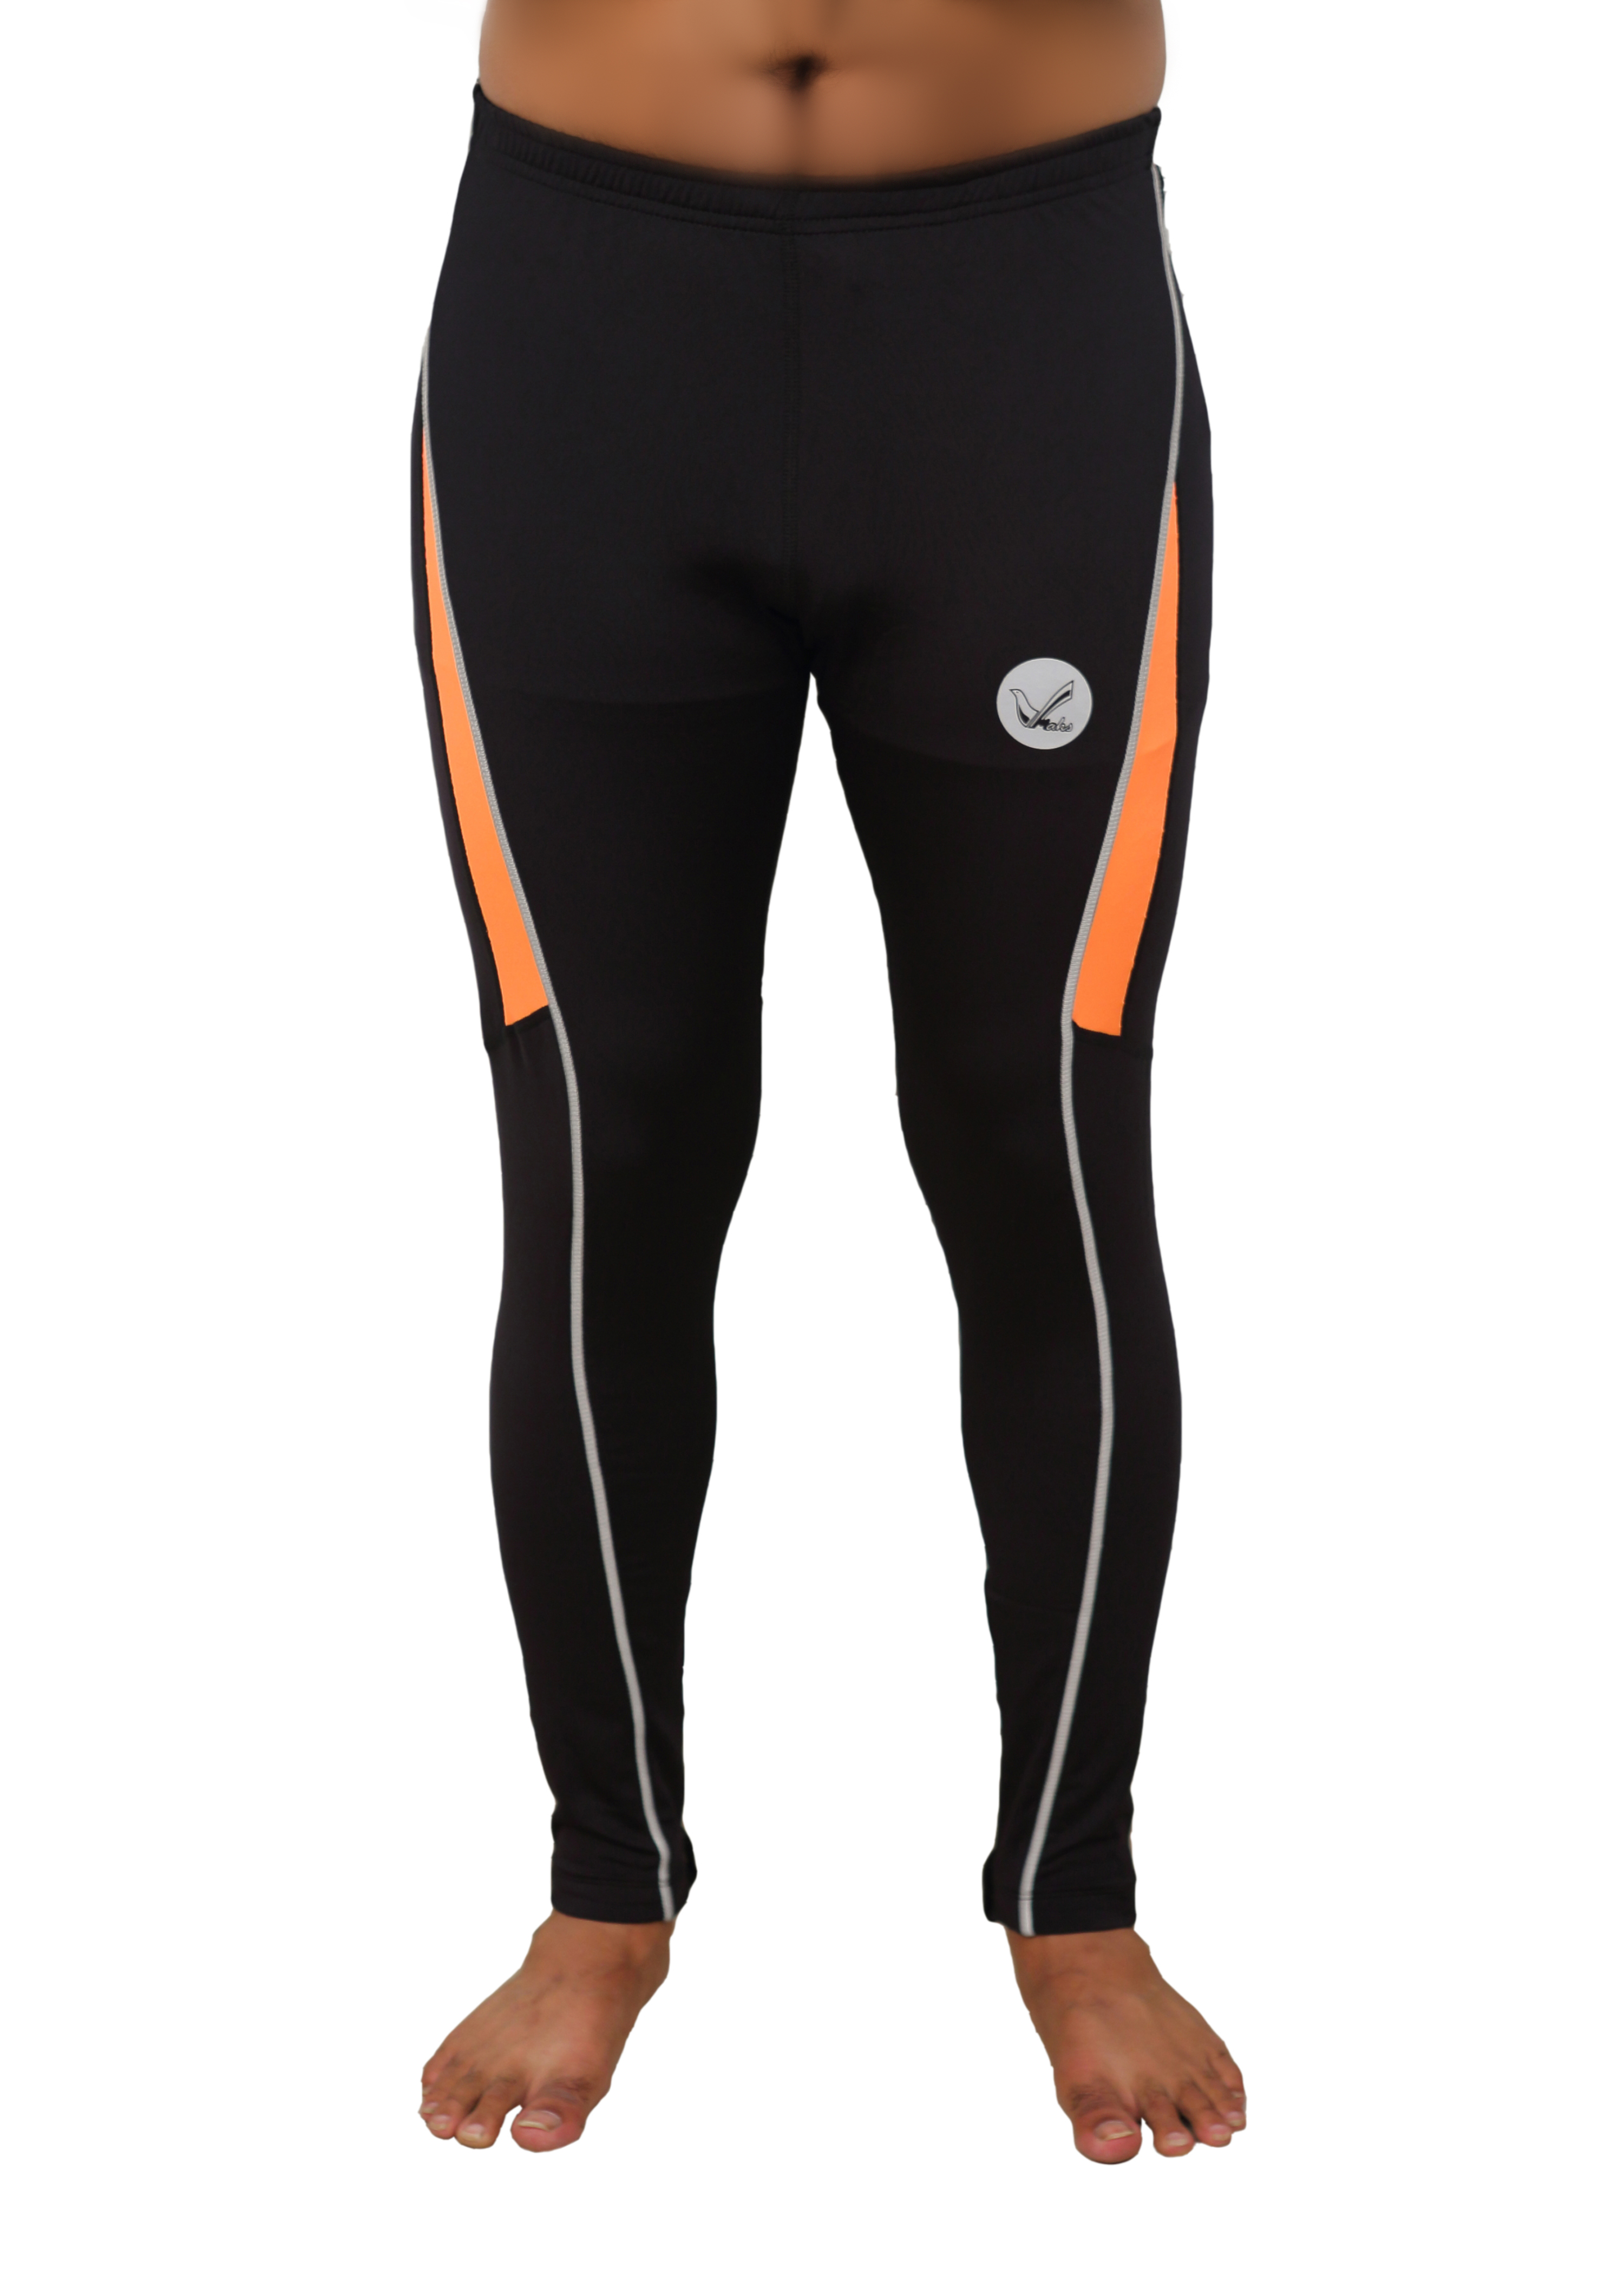 Men's Elite Design Fall Winter Thermal Running Tights Long Pants With Ankle Zipper and Reflective Elements